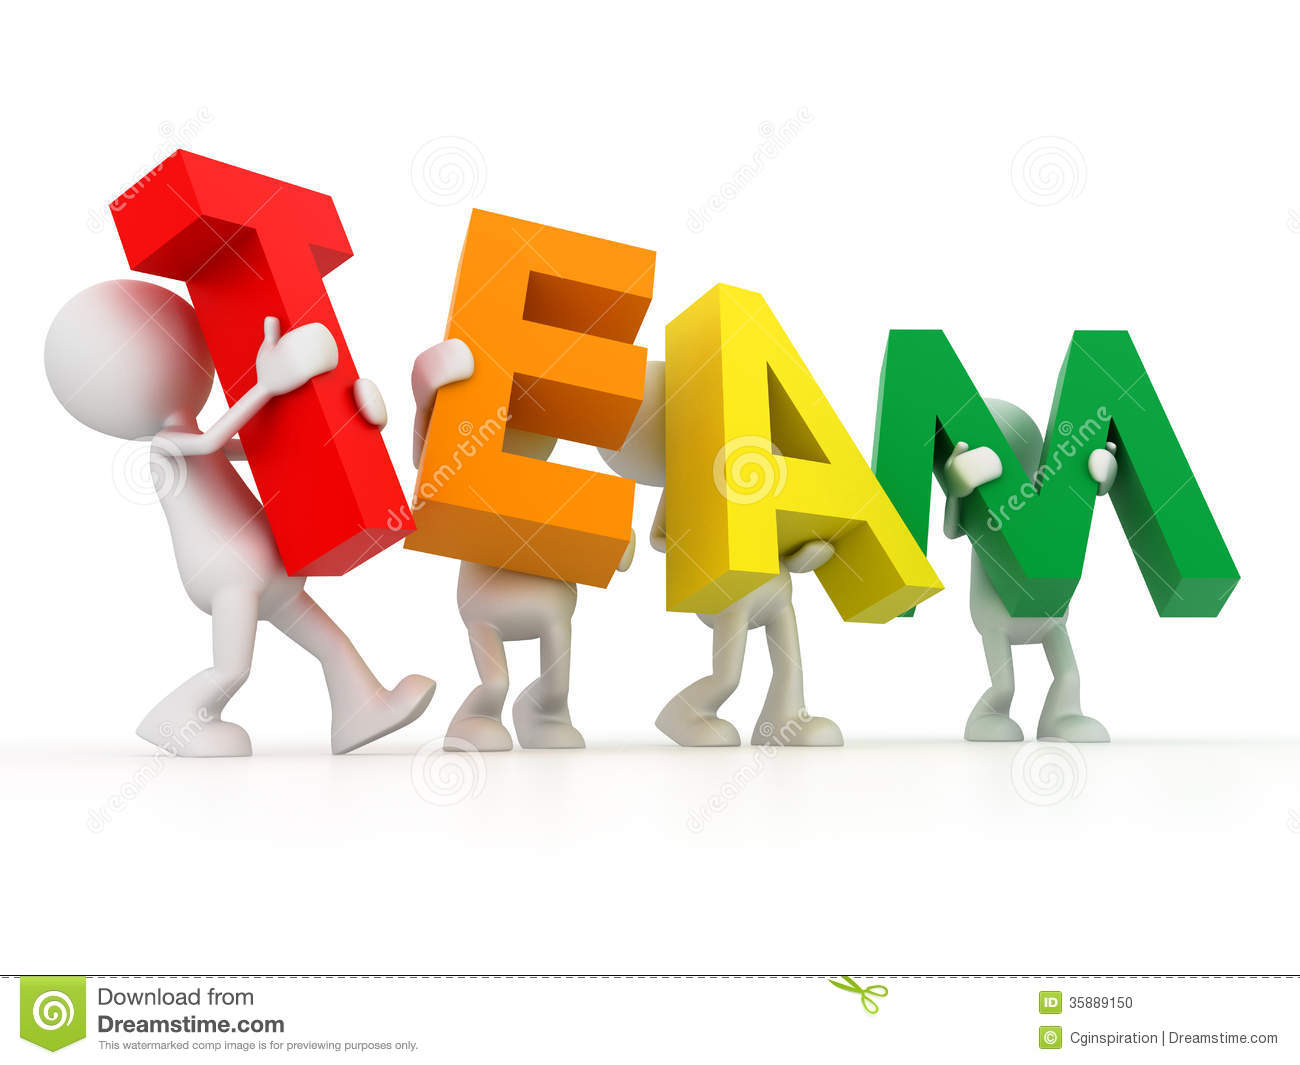 team clip art free clipart panda free clipart images rh clipartpanda com team player clipart free drill team clipart free